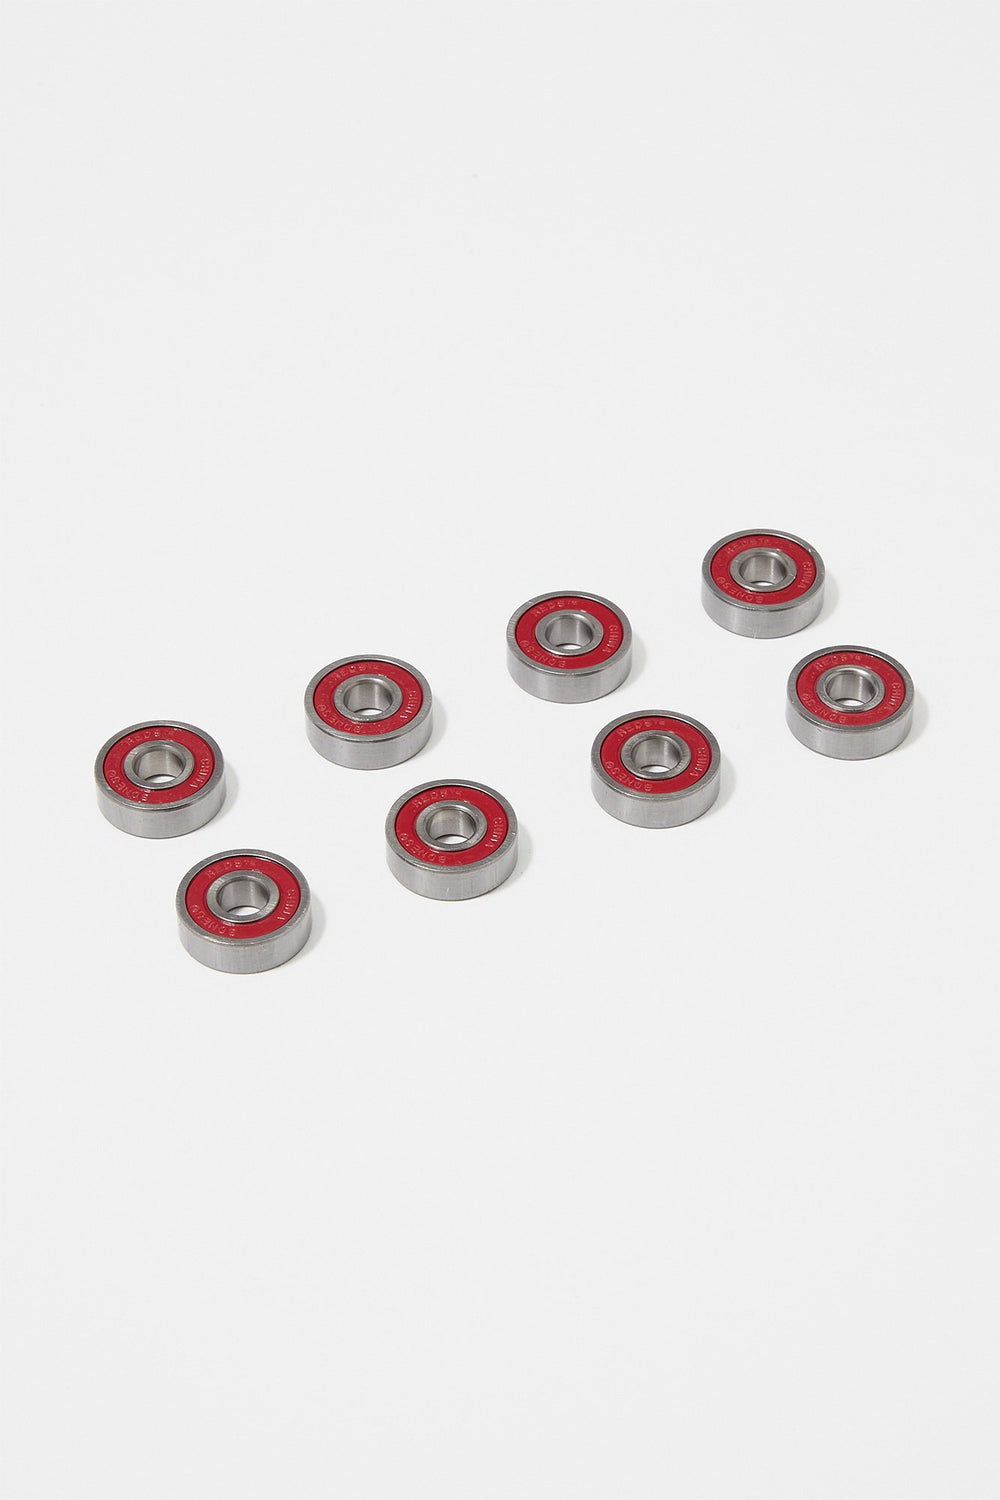 Bones Reds Skateboard Bearings (8-pack) Black